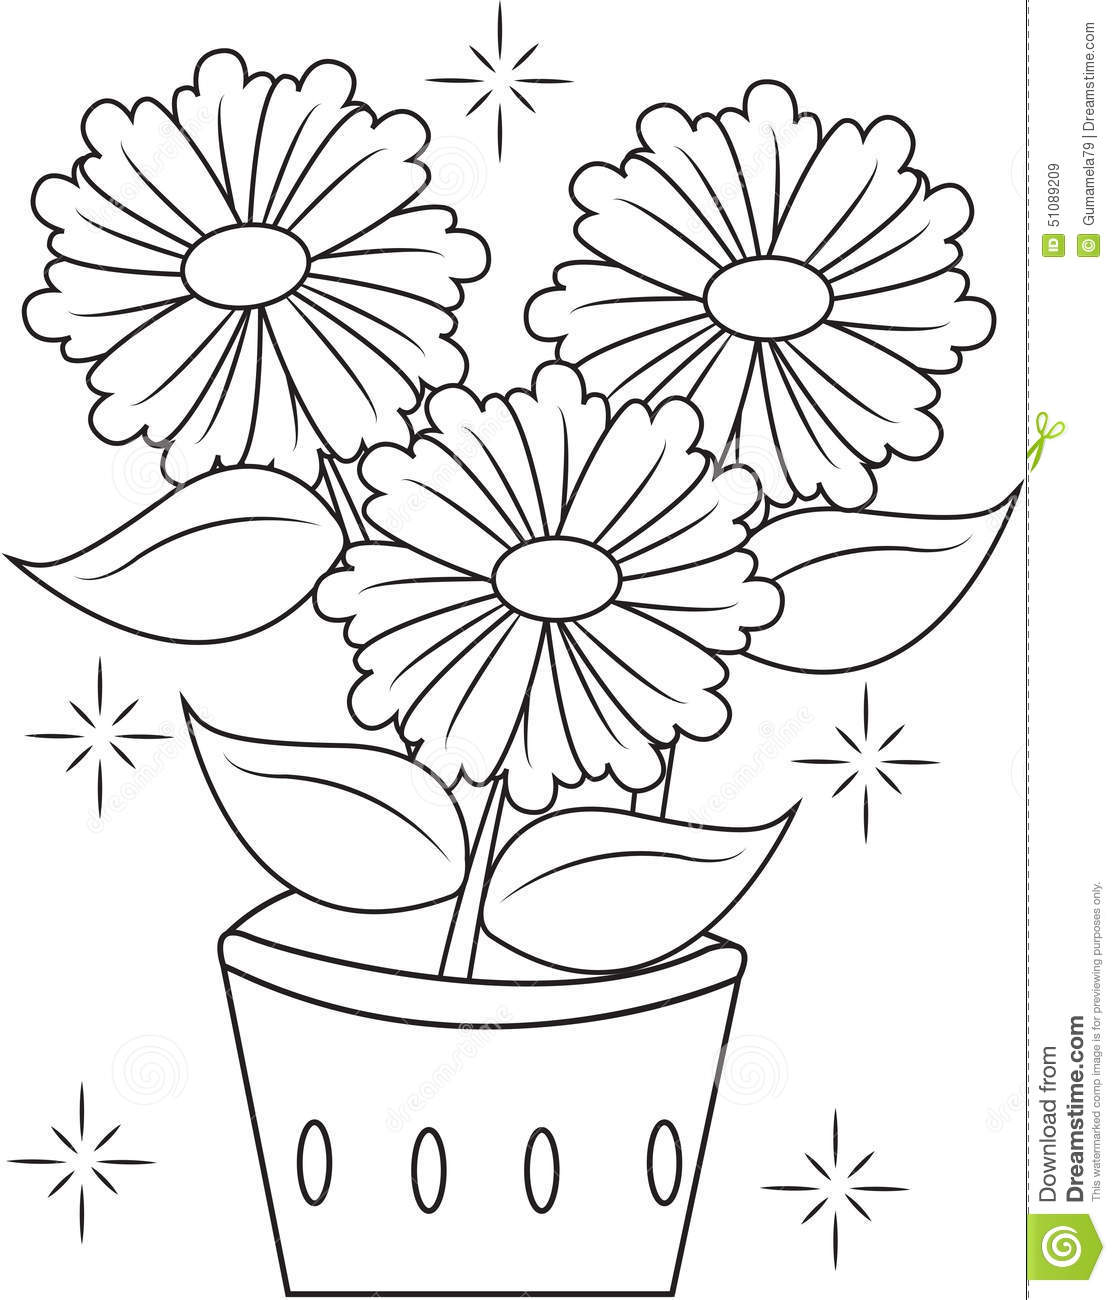 Flower pot coloring page stock illustration. Illustration of drawing ...